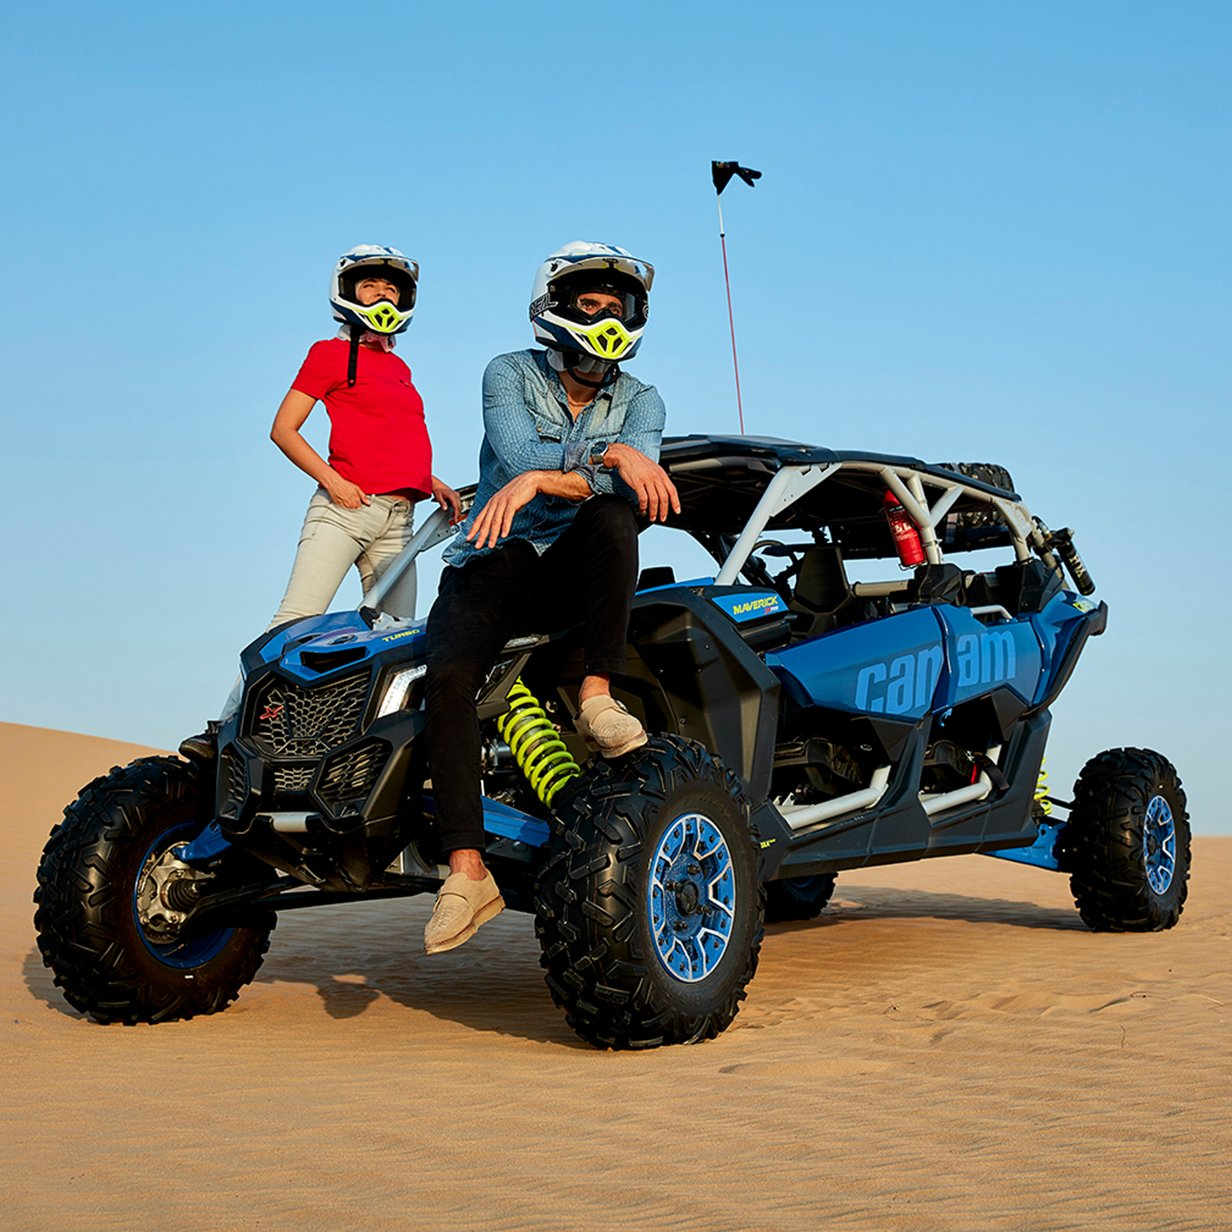 Desert Dune Buggies in Dubai - Morning Run, , large